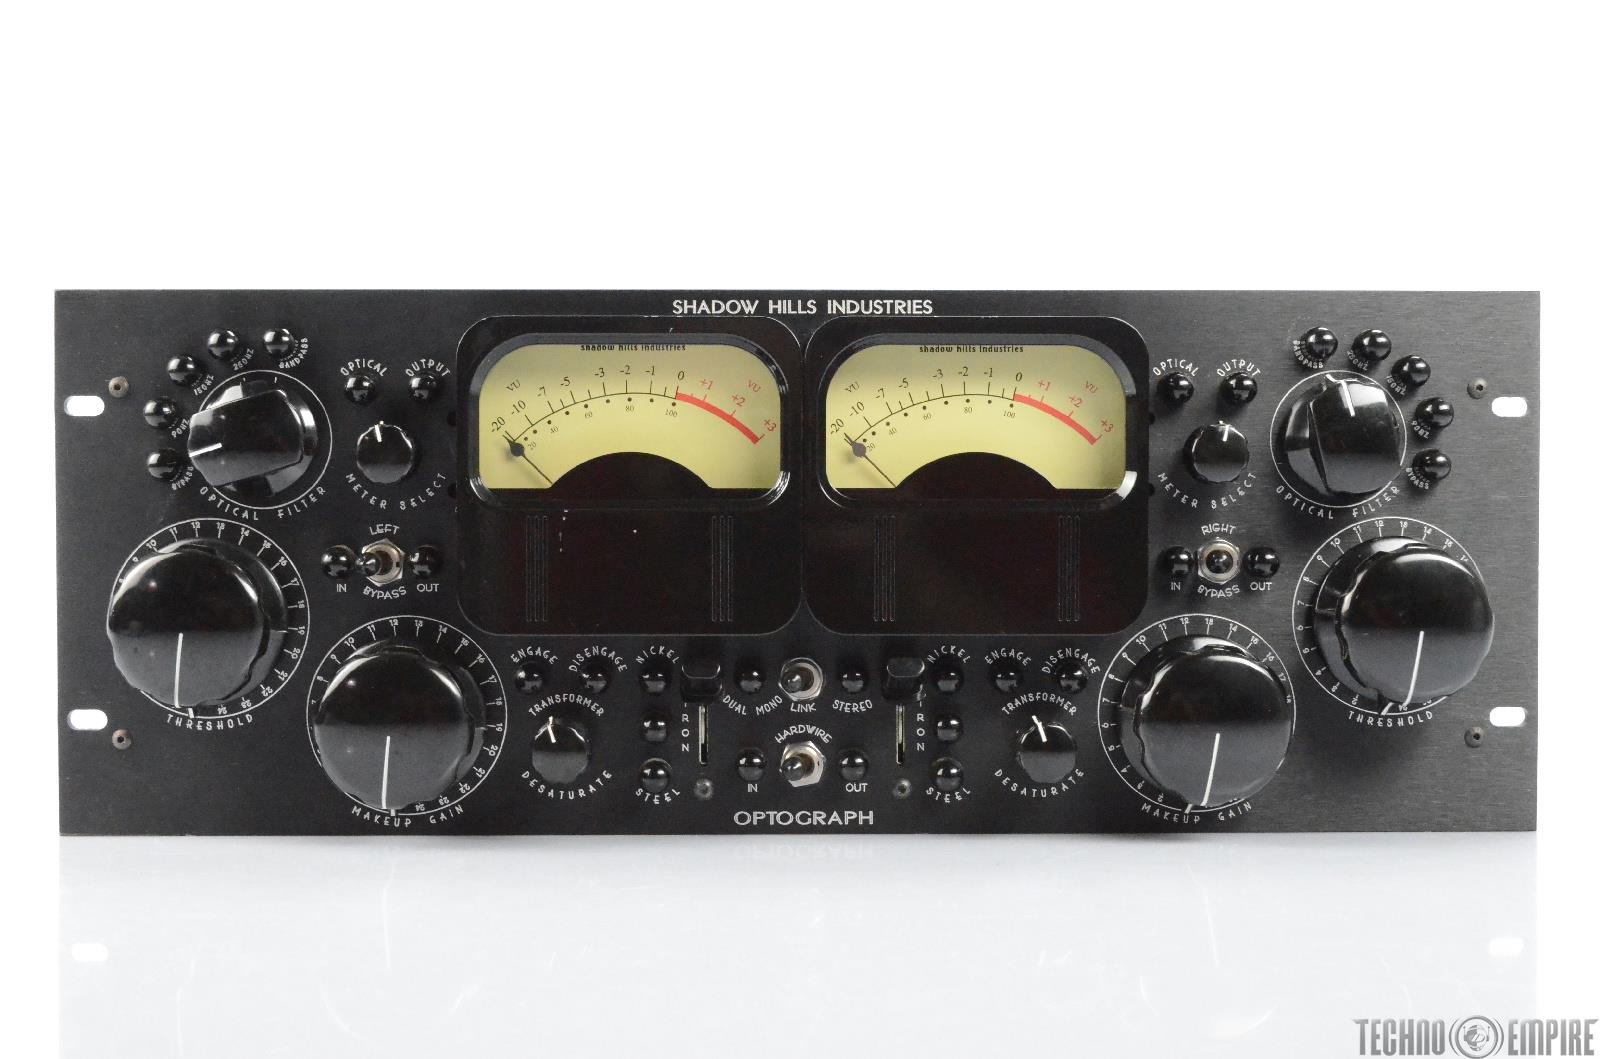 Shadow Hills Industries Optograph Stereo Compressor w/ PSU & Power Cable #29643